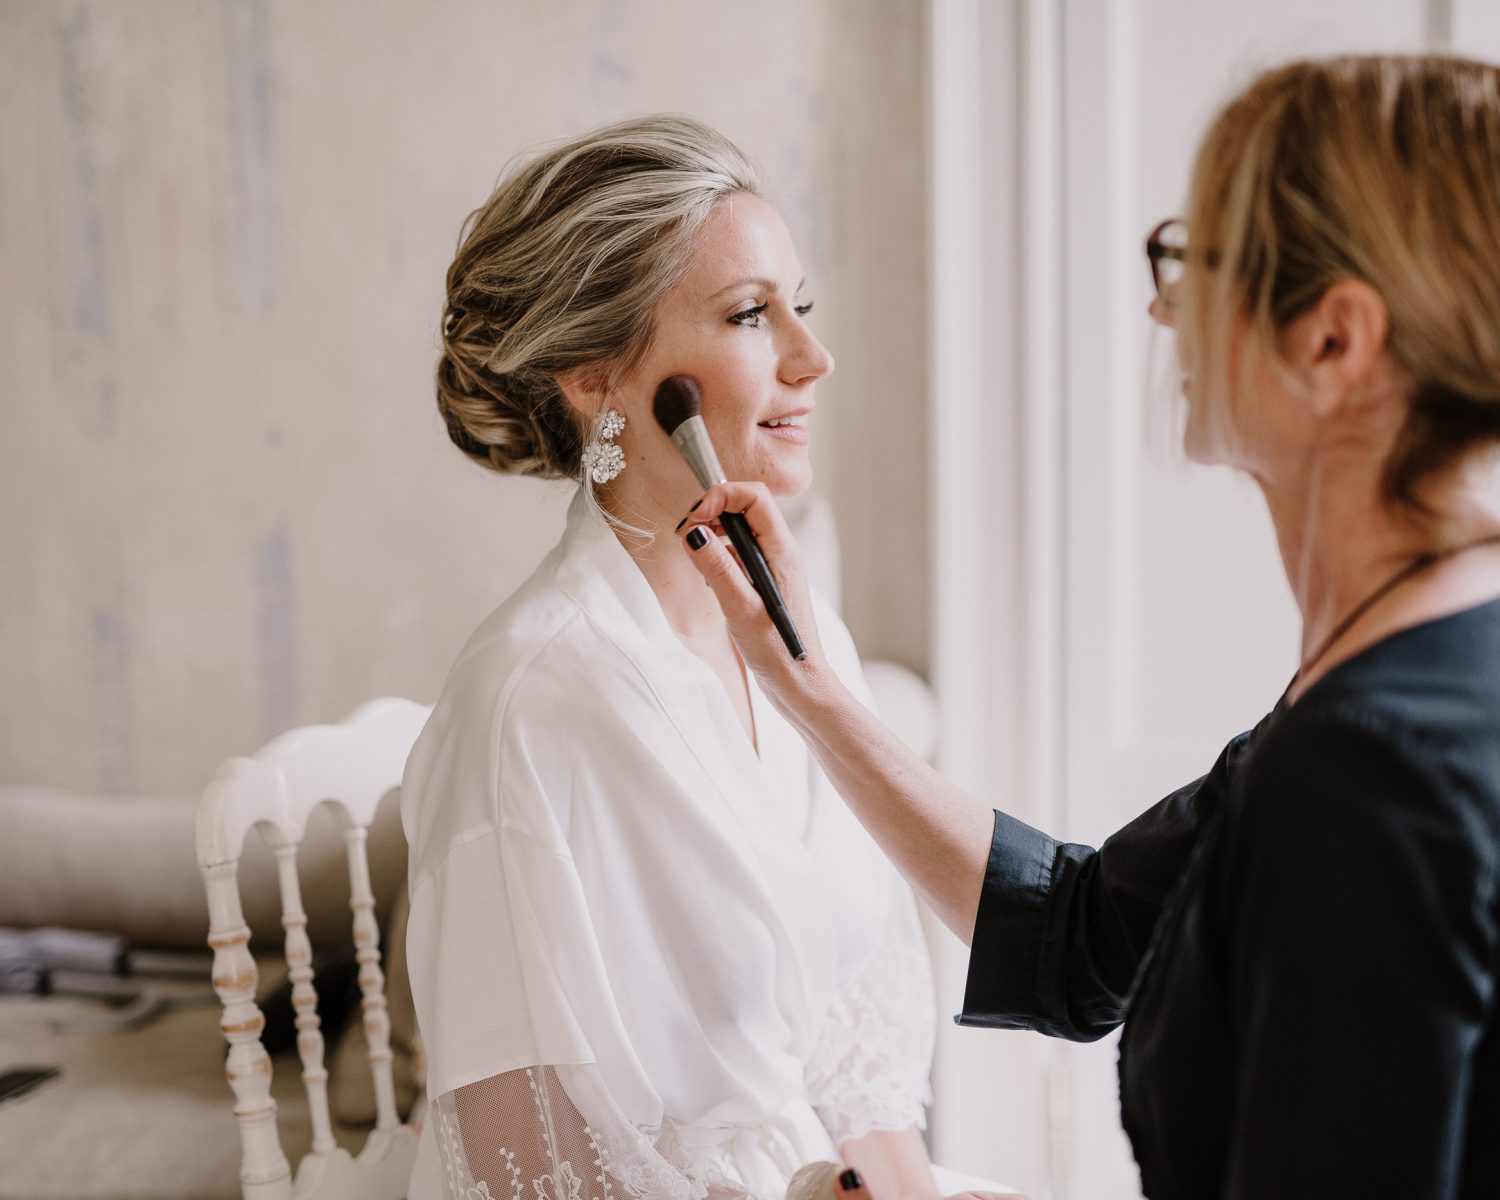 Charlotte Tilbury beauty wedding day makeup executive